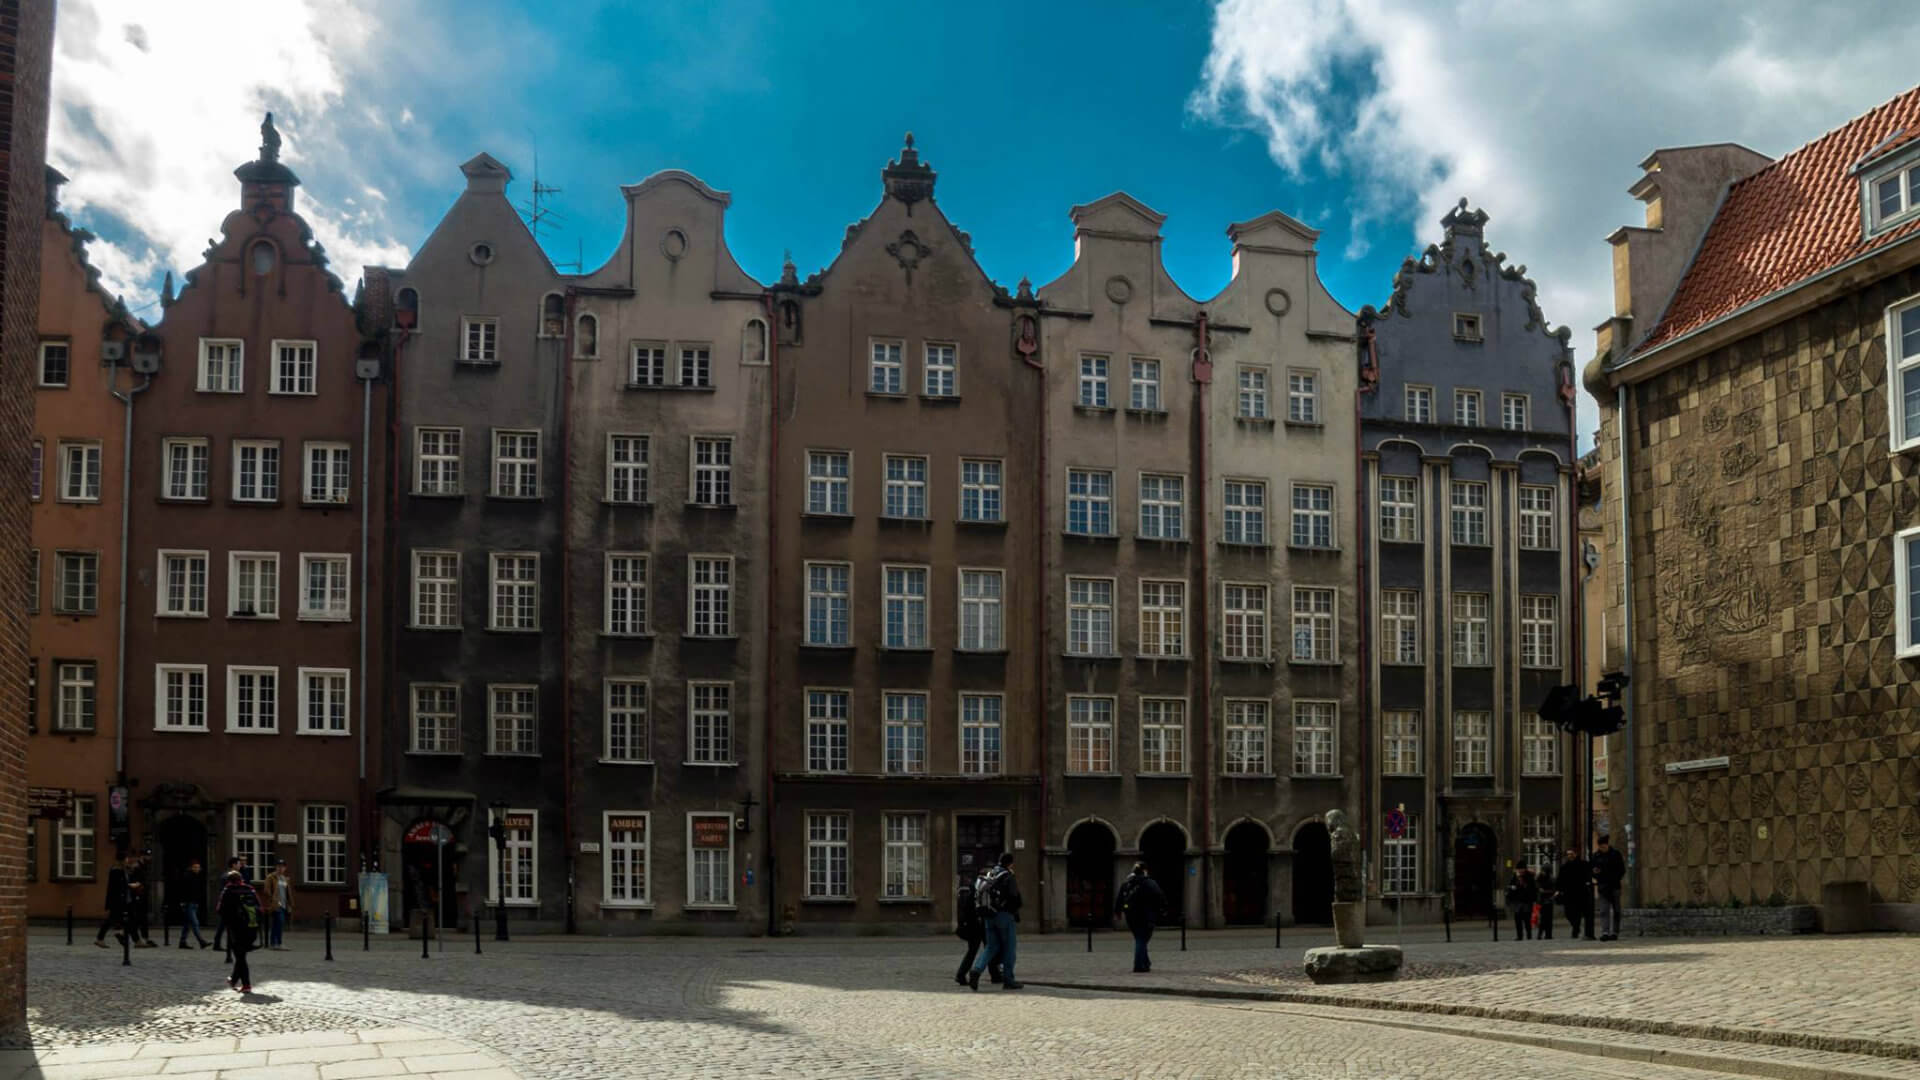 "Photograph taken by <a href=""https://www.facebook.com/luciansorin.g/"">Sorin Lucian</a> - Merchants houses at Long Market Street (Długi Targ) in Old Town."